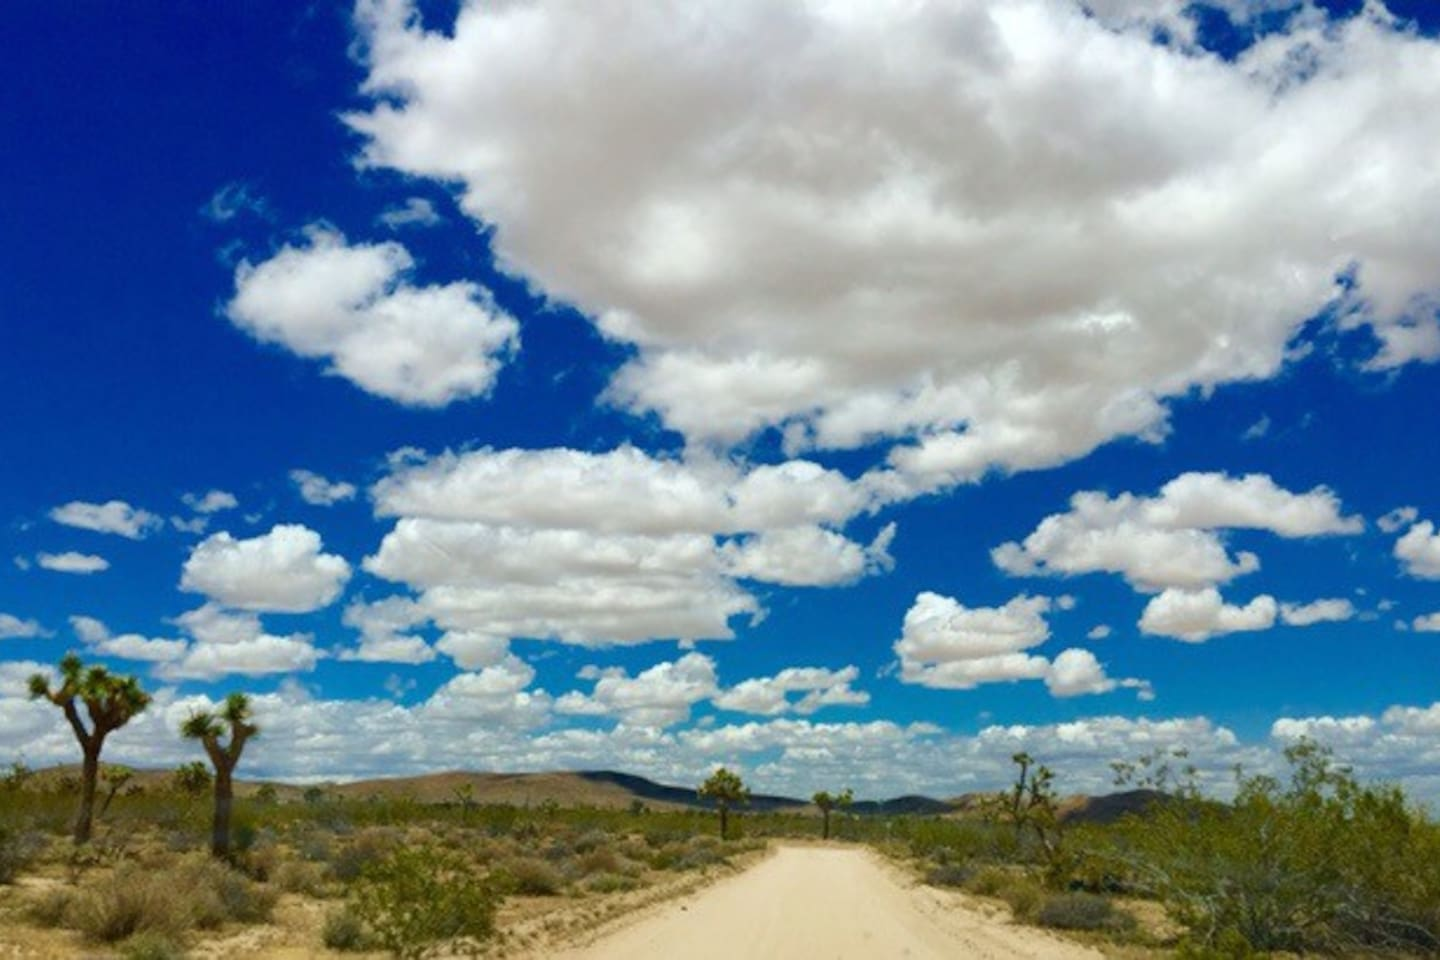 Welcome to Joshua Tree! The wide Open blues skies over turtle rock ranch